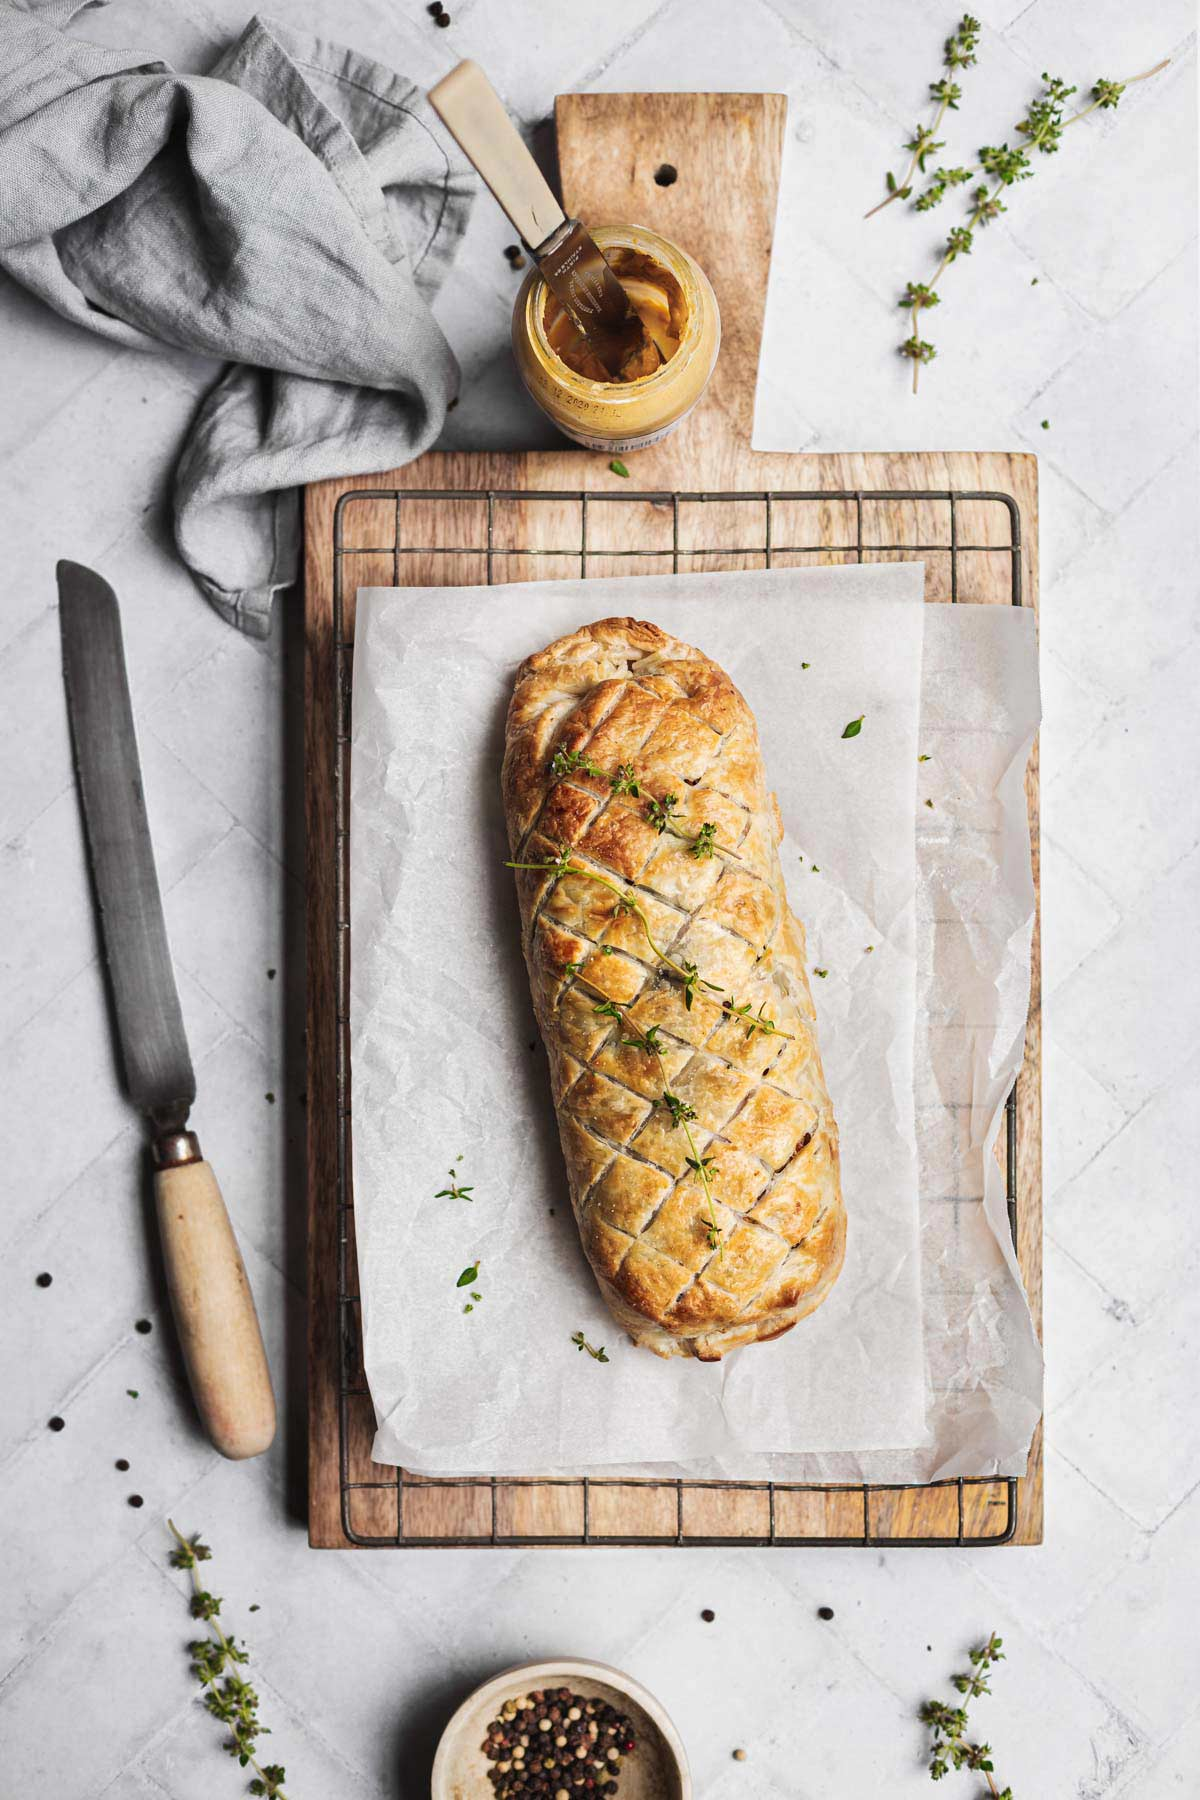 An uncut filled pastry roll on a cutting board on a table setting.